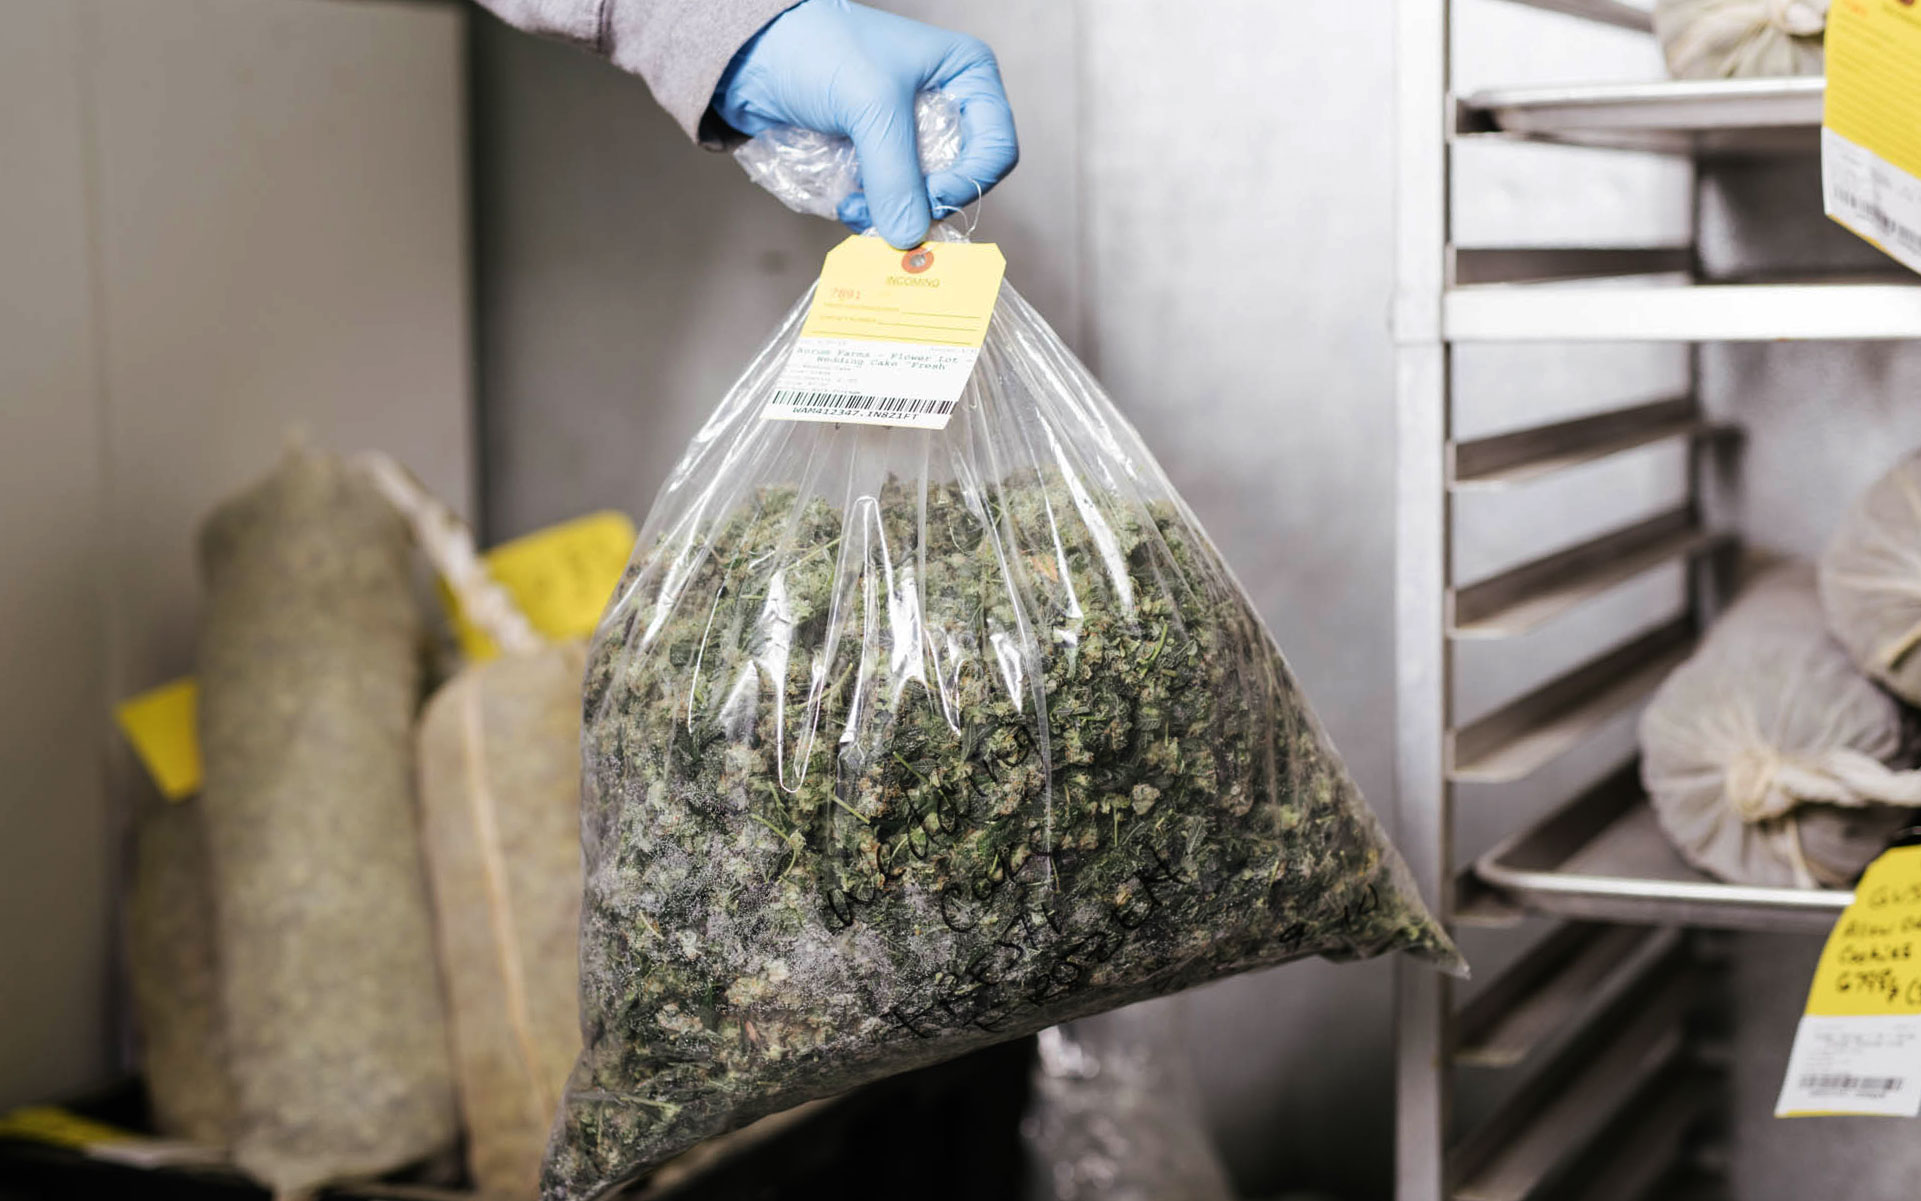 extraction, cannabis concentrate, marijuana concentrate